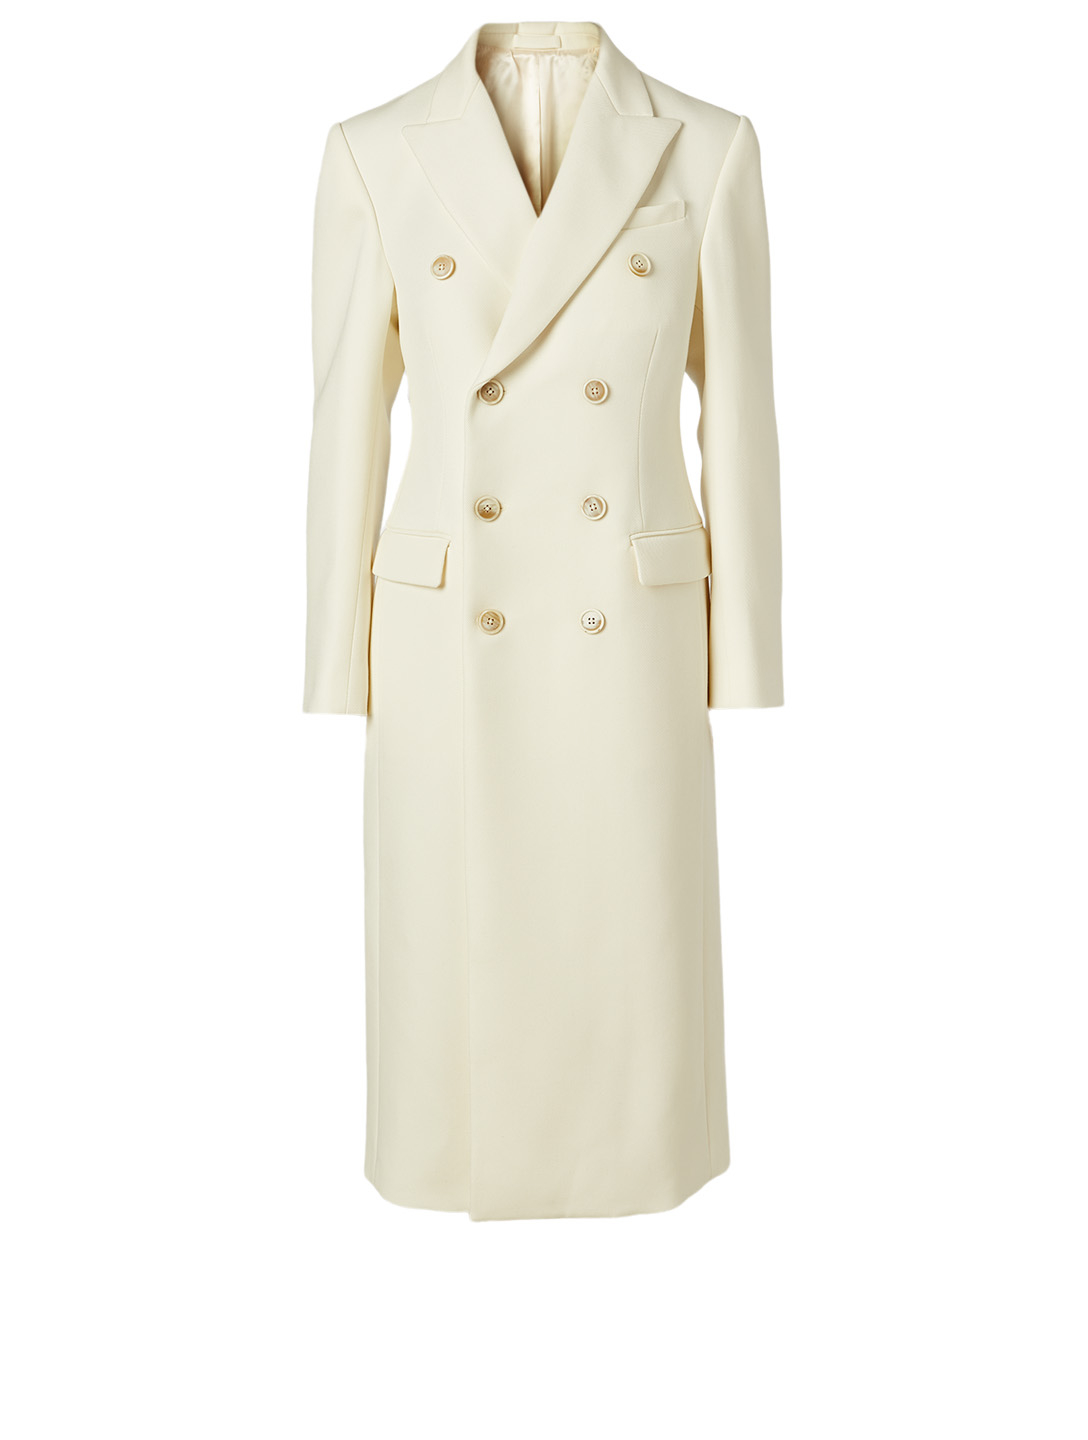 WARDROBE.NYC Wool Double-Breasted Coat Women's White